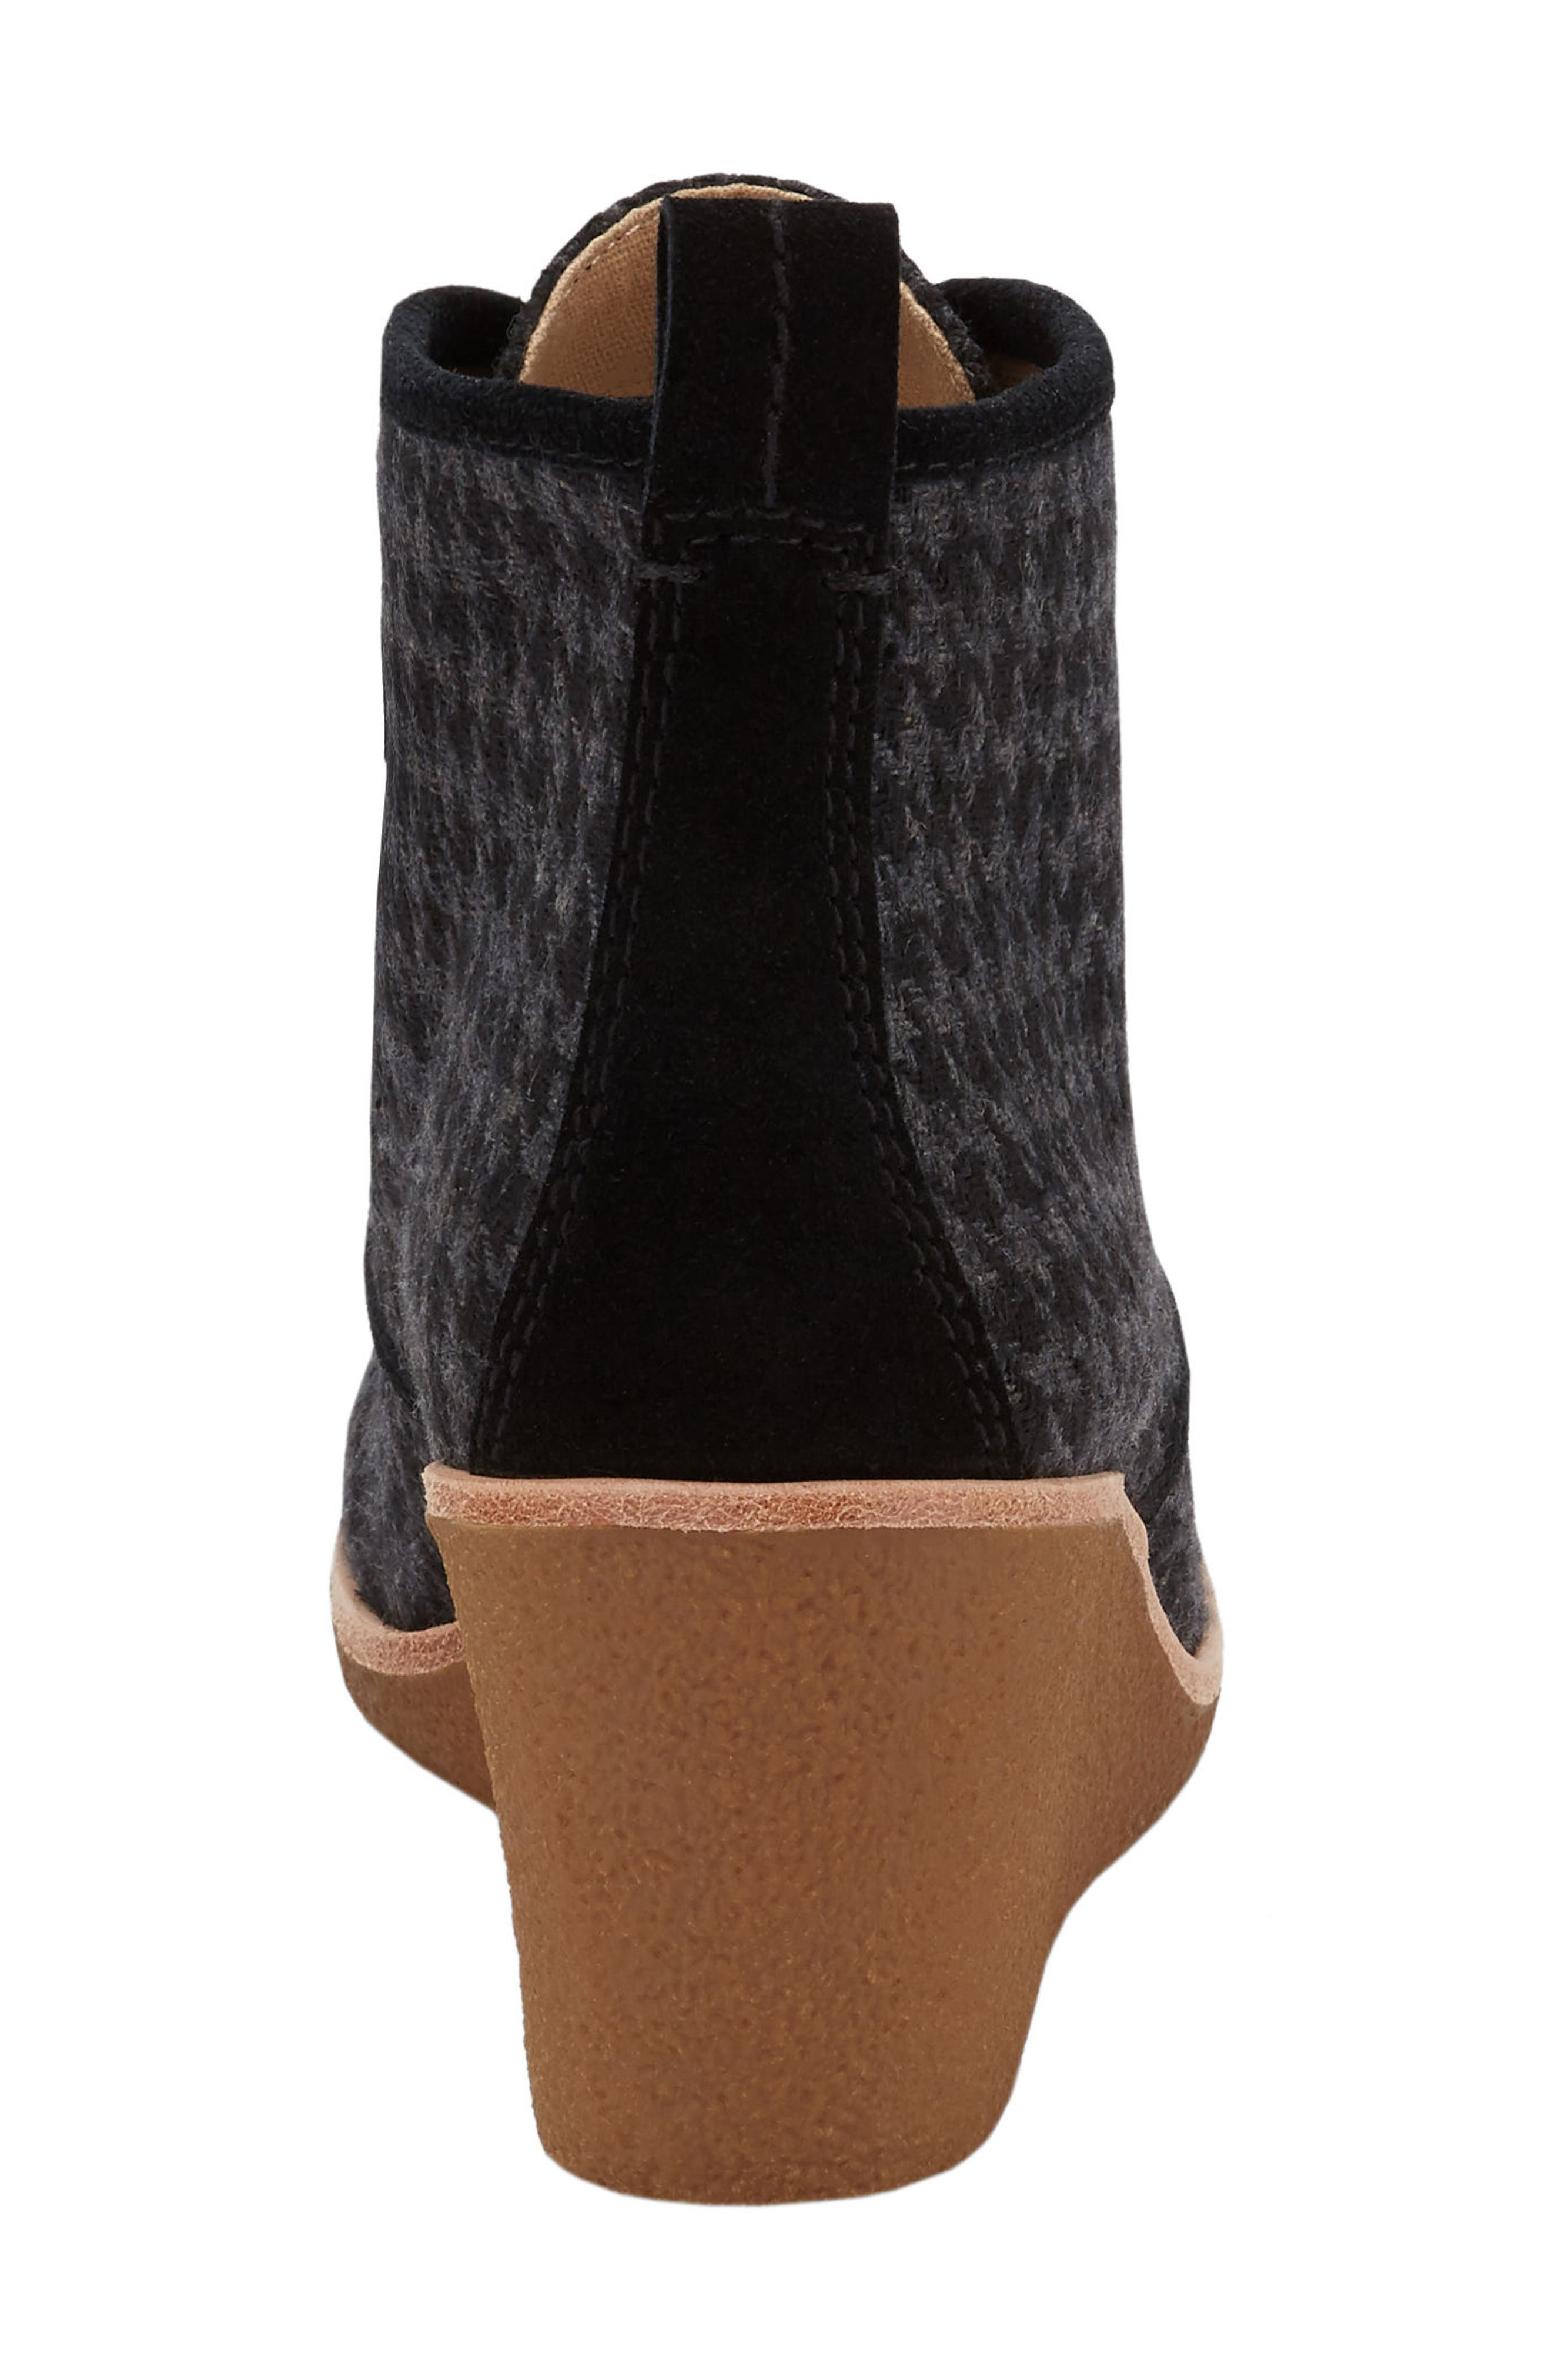 Rosa Wedge Bootie,                             Alternate thumbnail 4, color,                             001